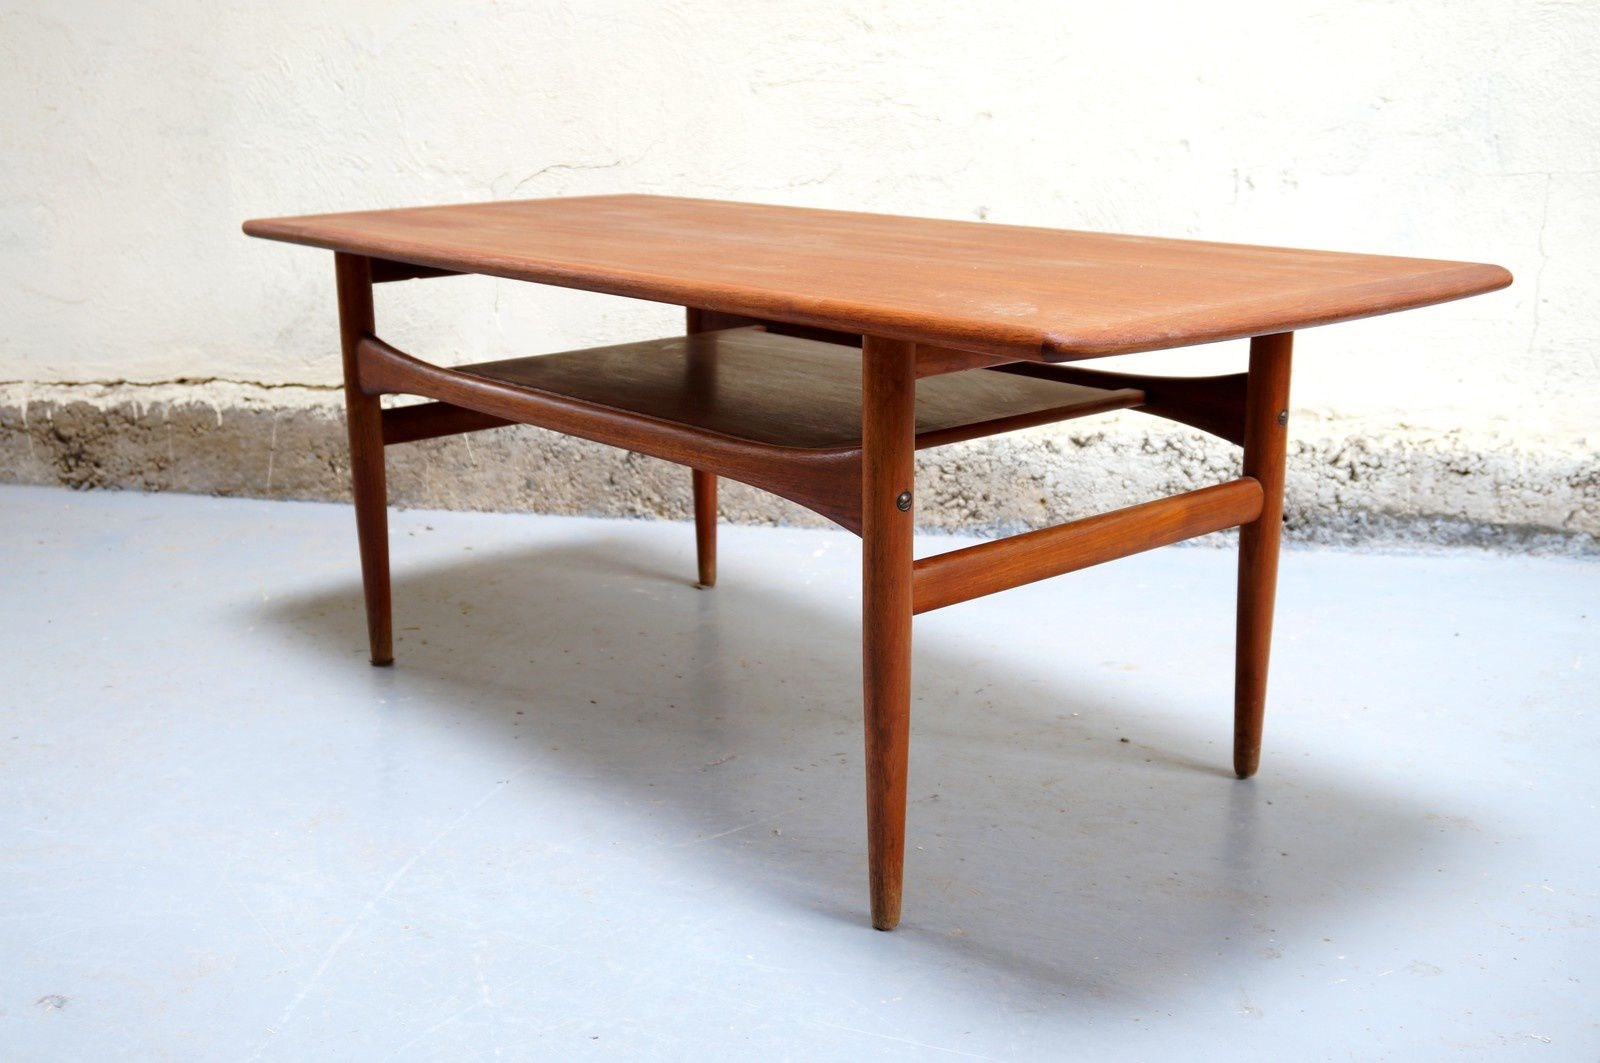 Table basse scandinave arrebo mobler danois vintage danish for Table basse scandinave design